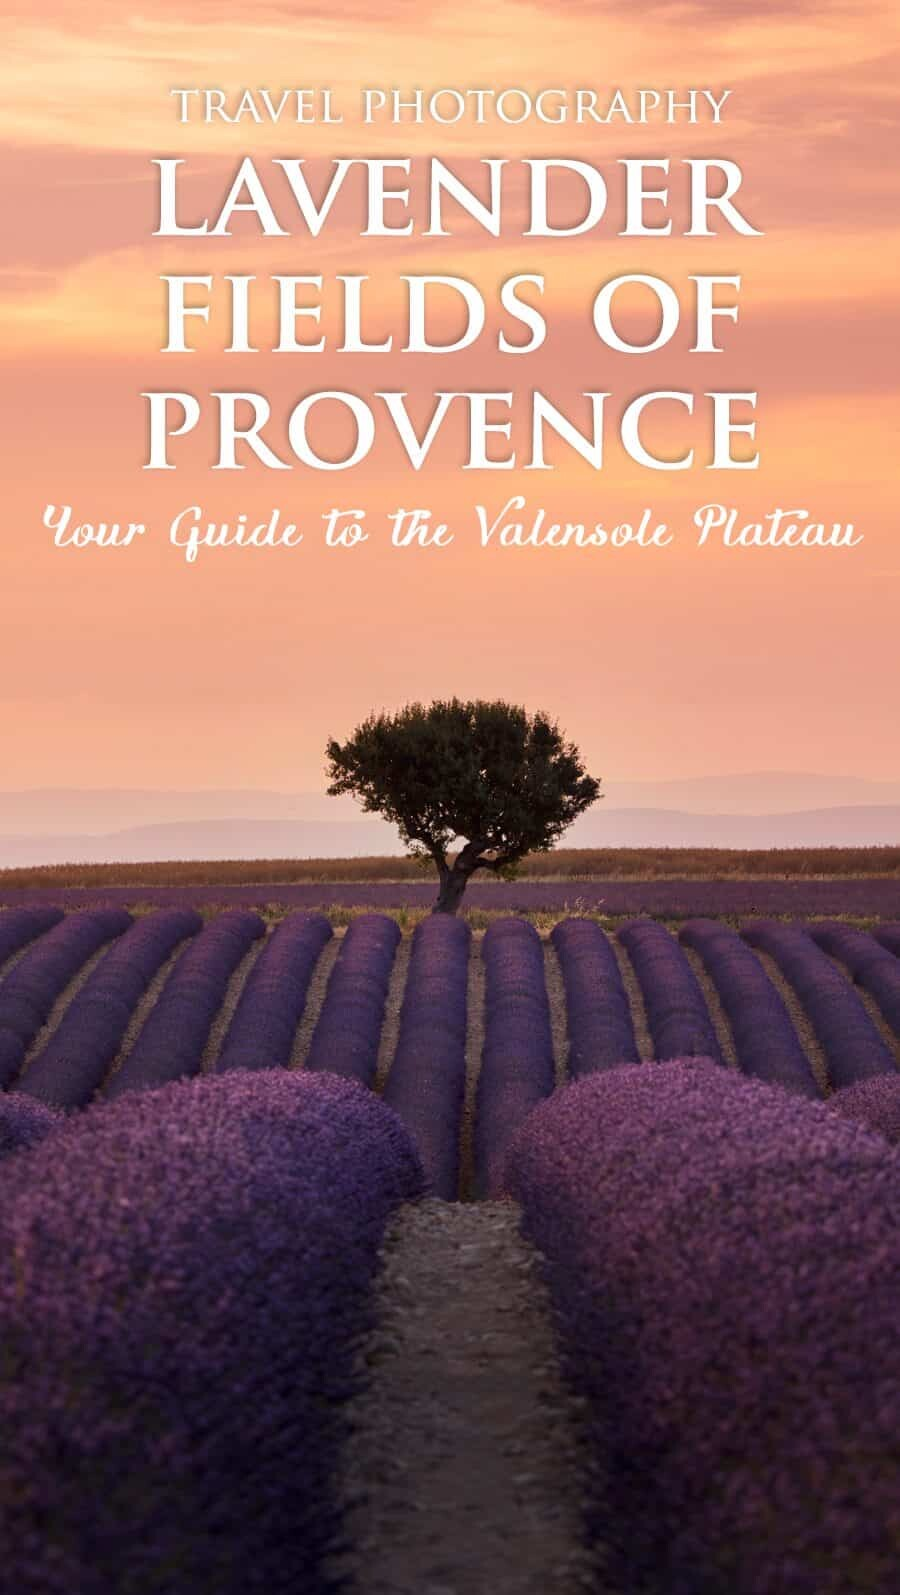 Lavender Fields France Map.Provence Lavender Fields A Photographer S Guide To Valensole France